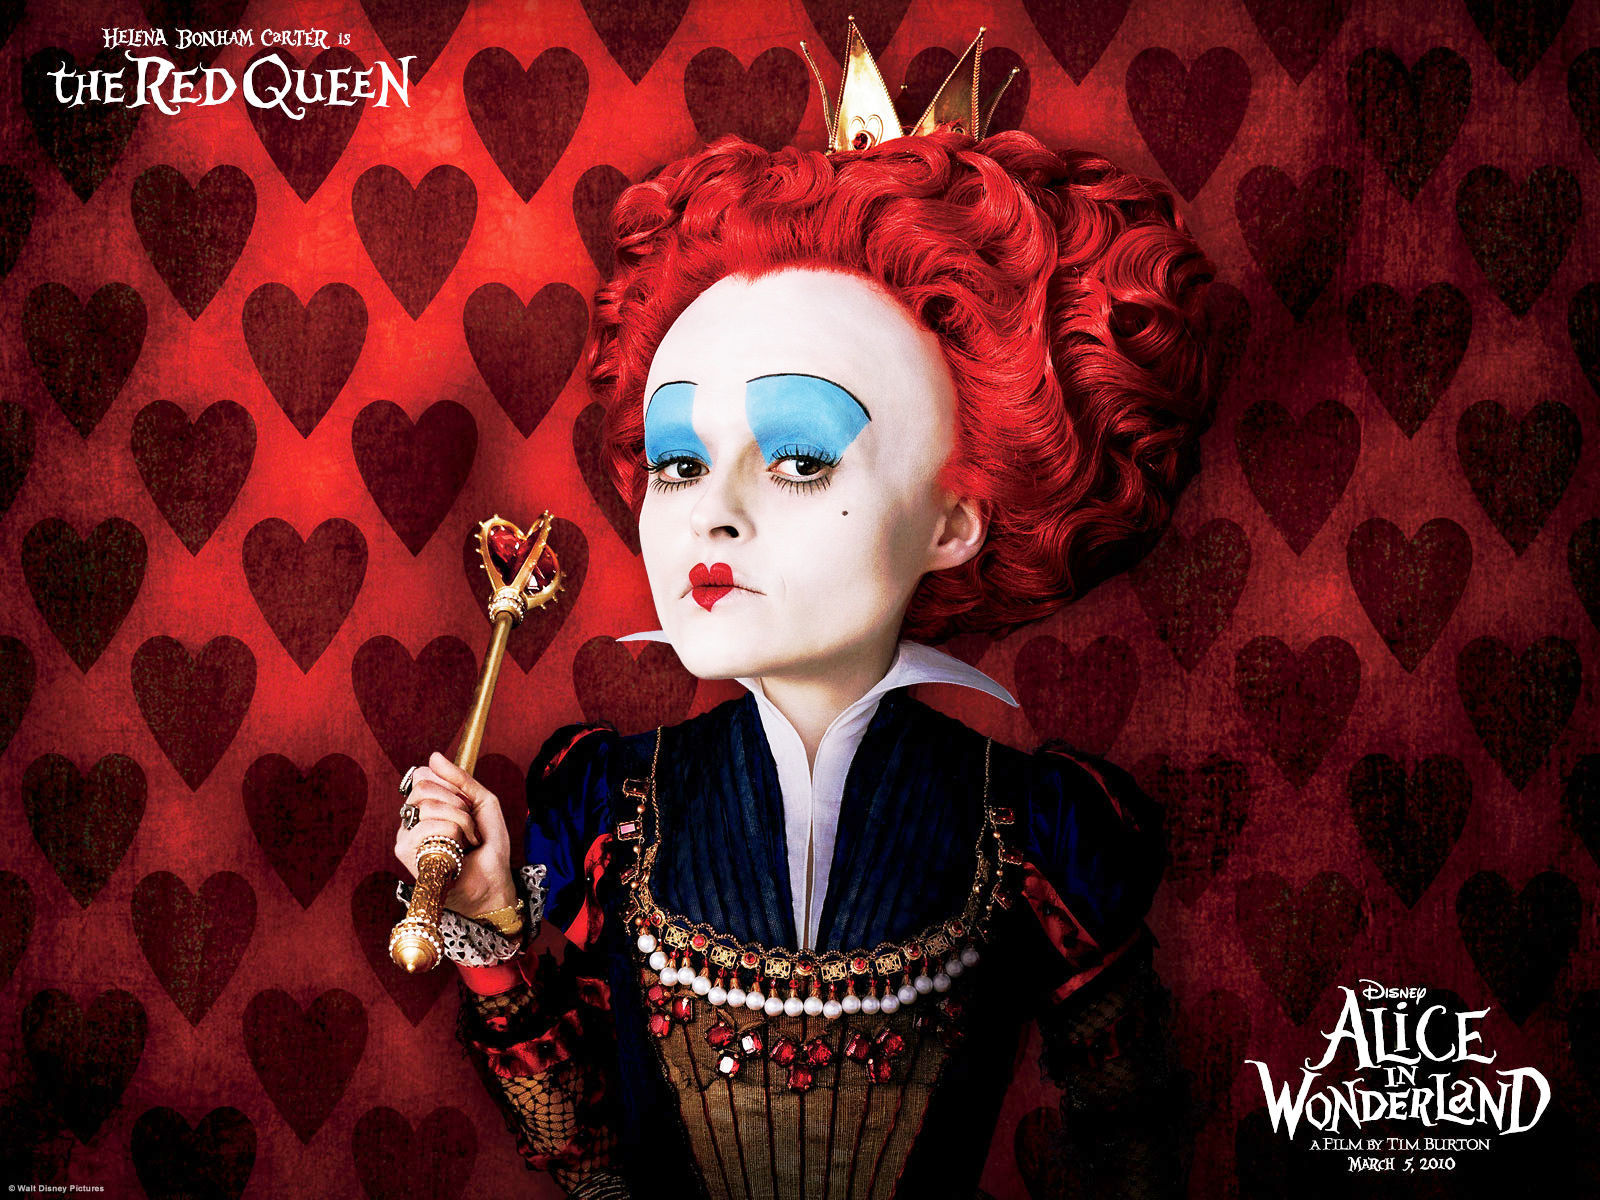 images of red queen from alice in wonderland